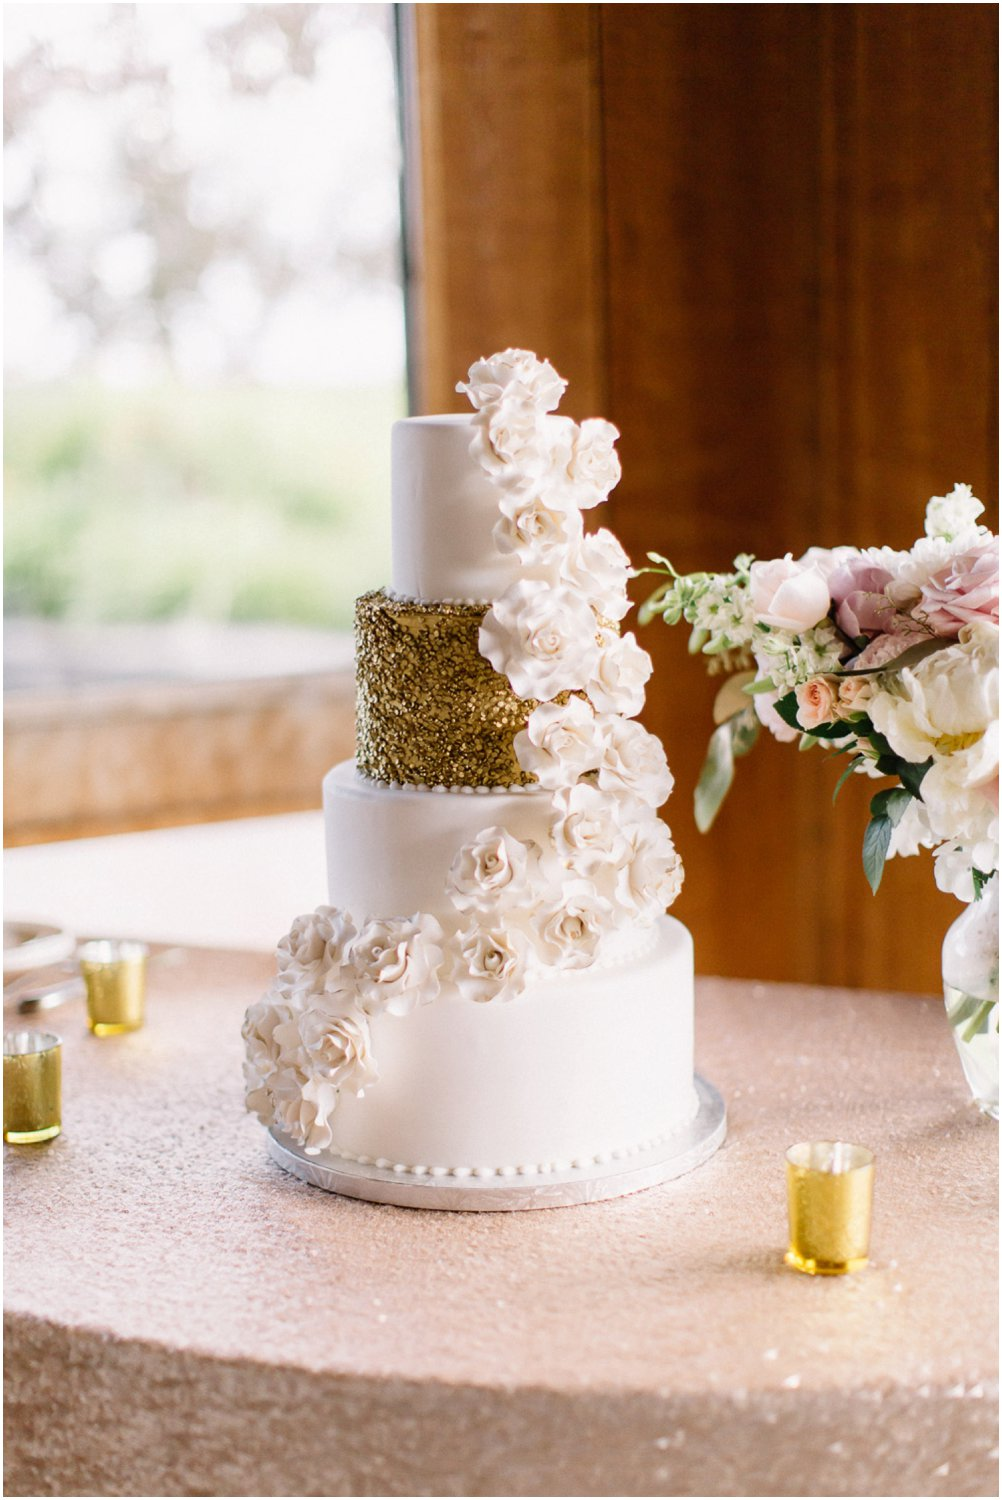 Floral wedding cake - Calgary Wedding Photographer_4854